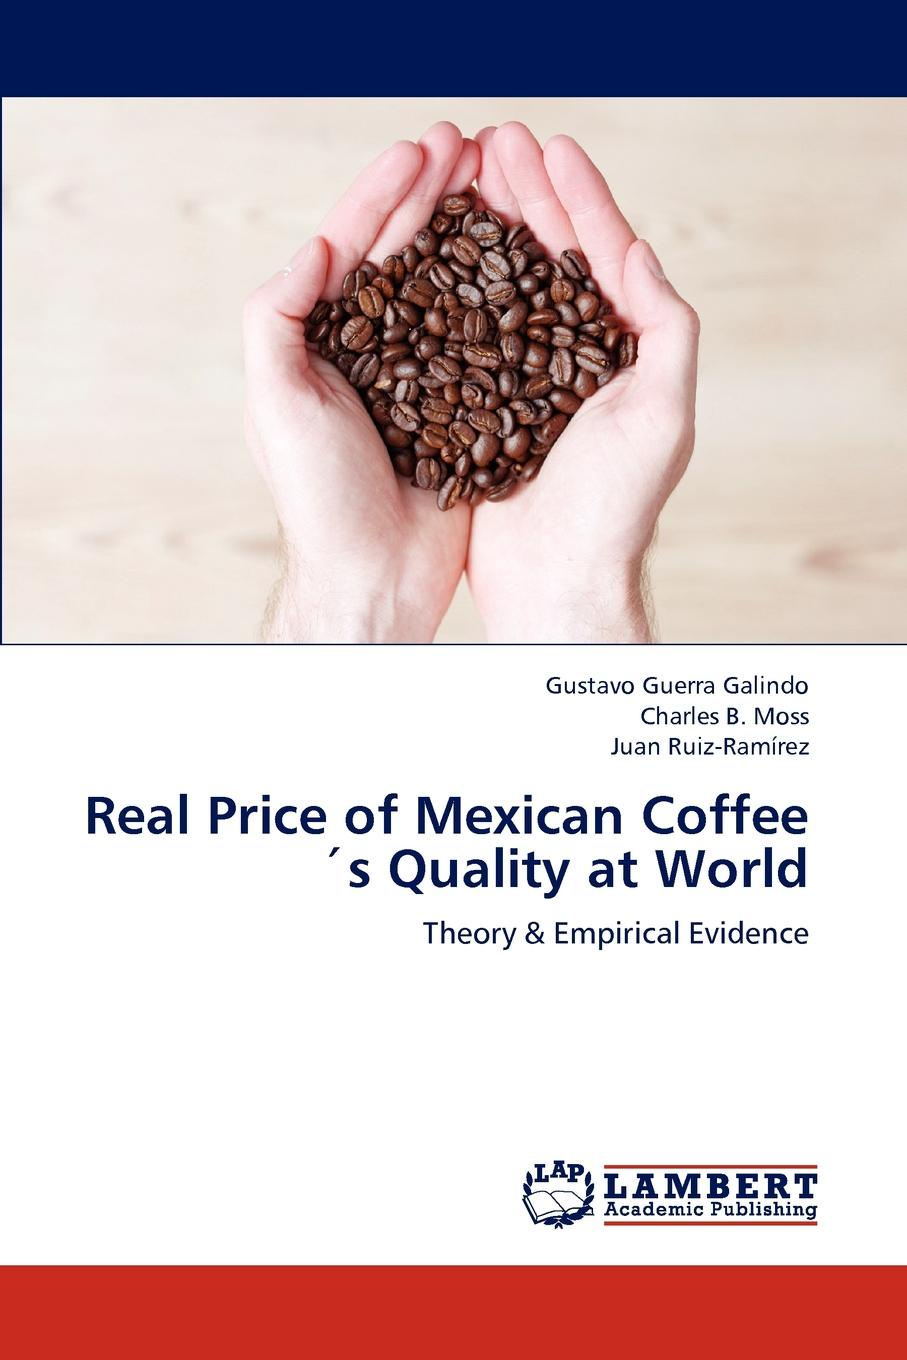 Gustavo Guerra Galindo, Charles B. Moss, Juan Ruiz-Ram Rez Real Price of Mexican Coffees Quality at World role of coffee companies in promoting coffee smallholders in arusha